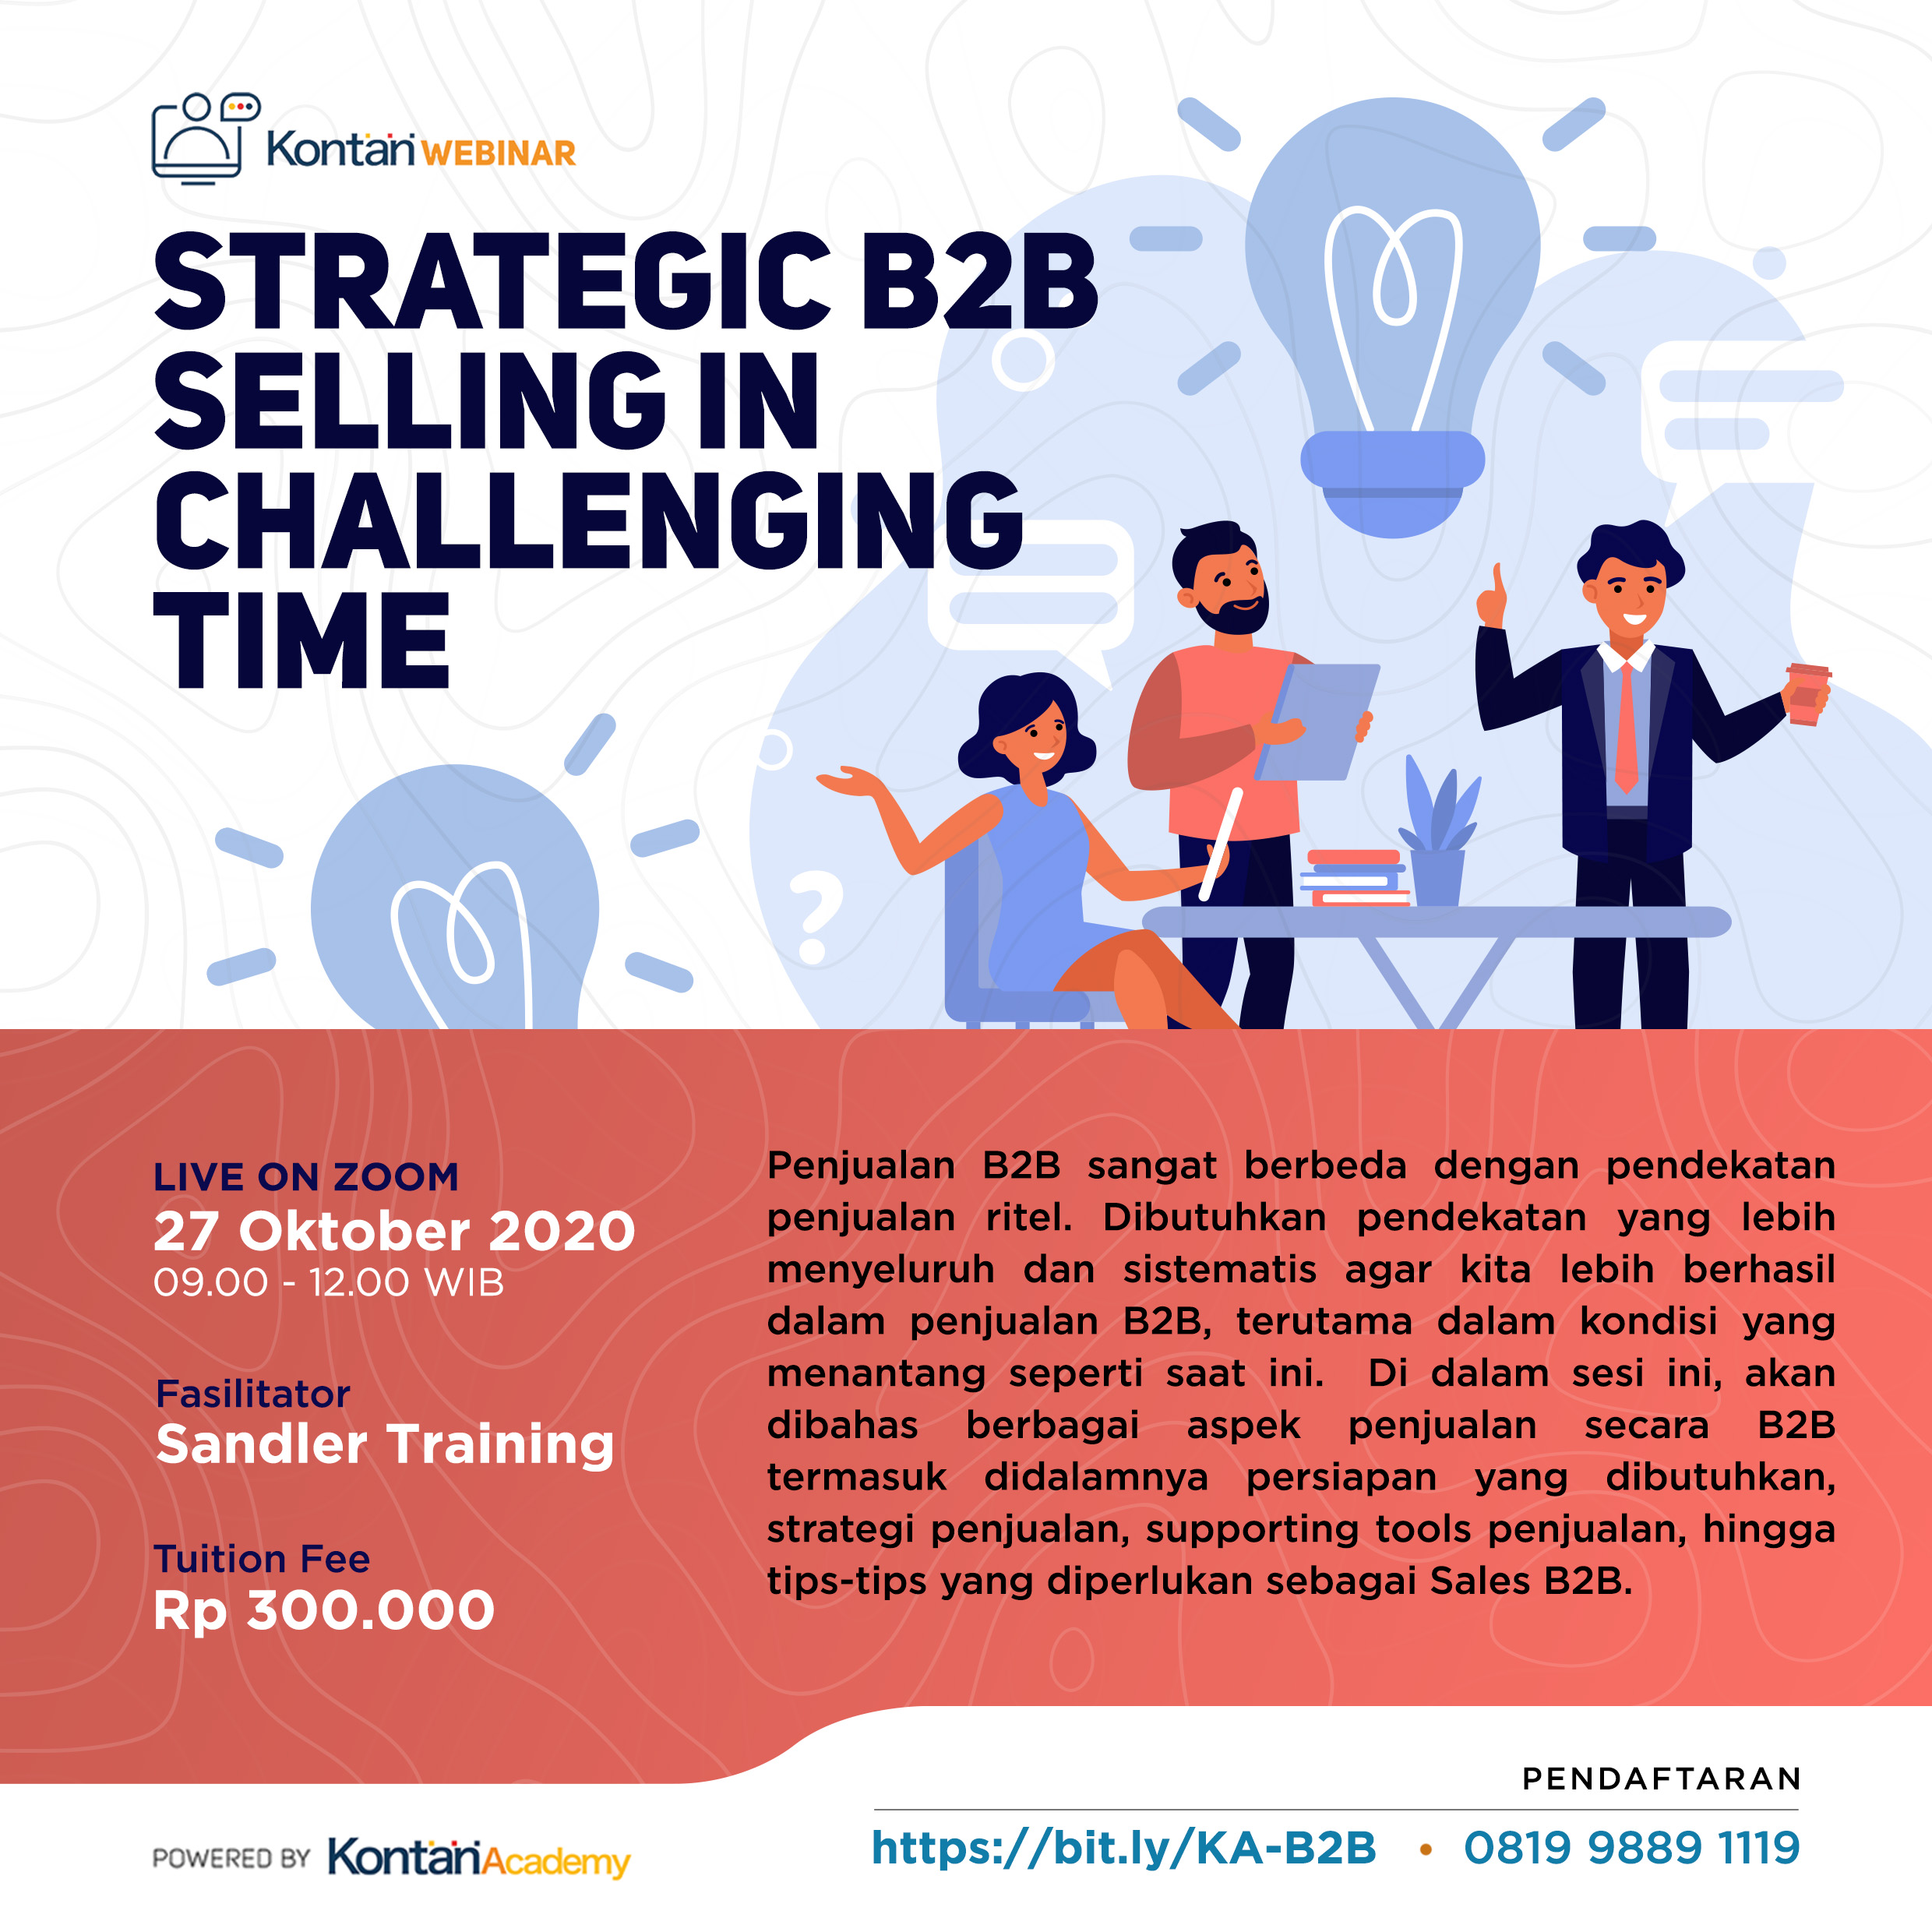 Strategic B2B Selling in Challenging Time